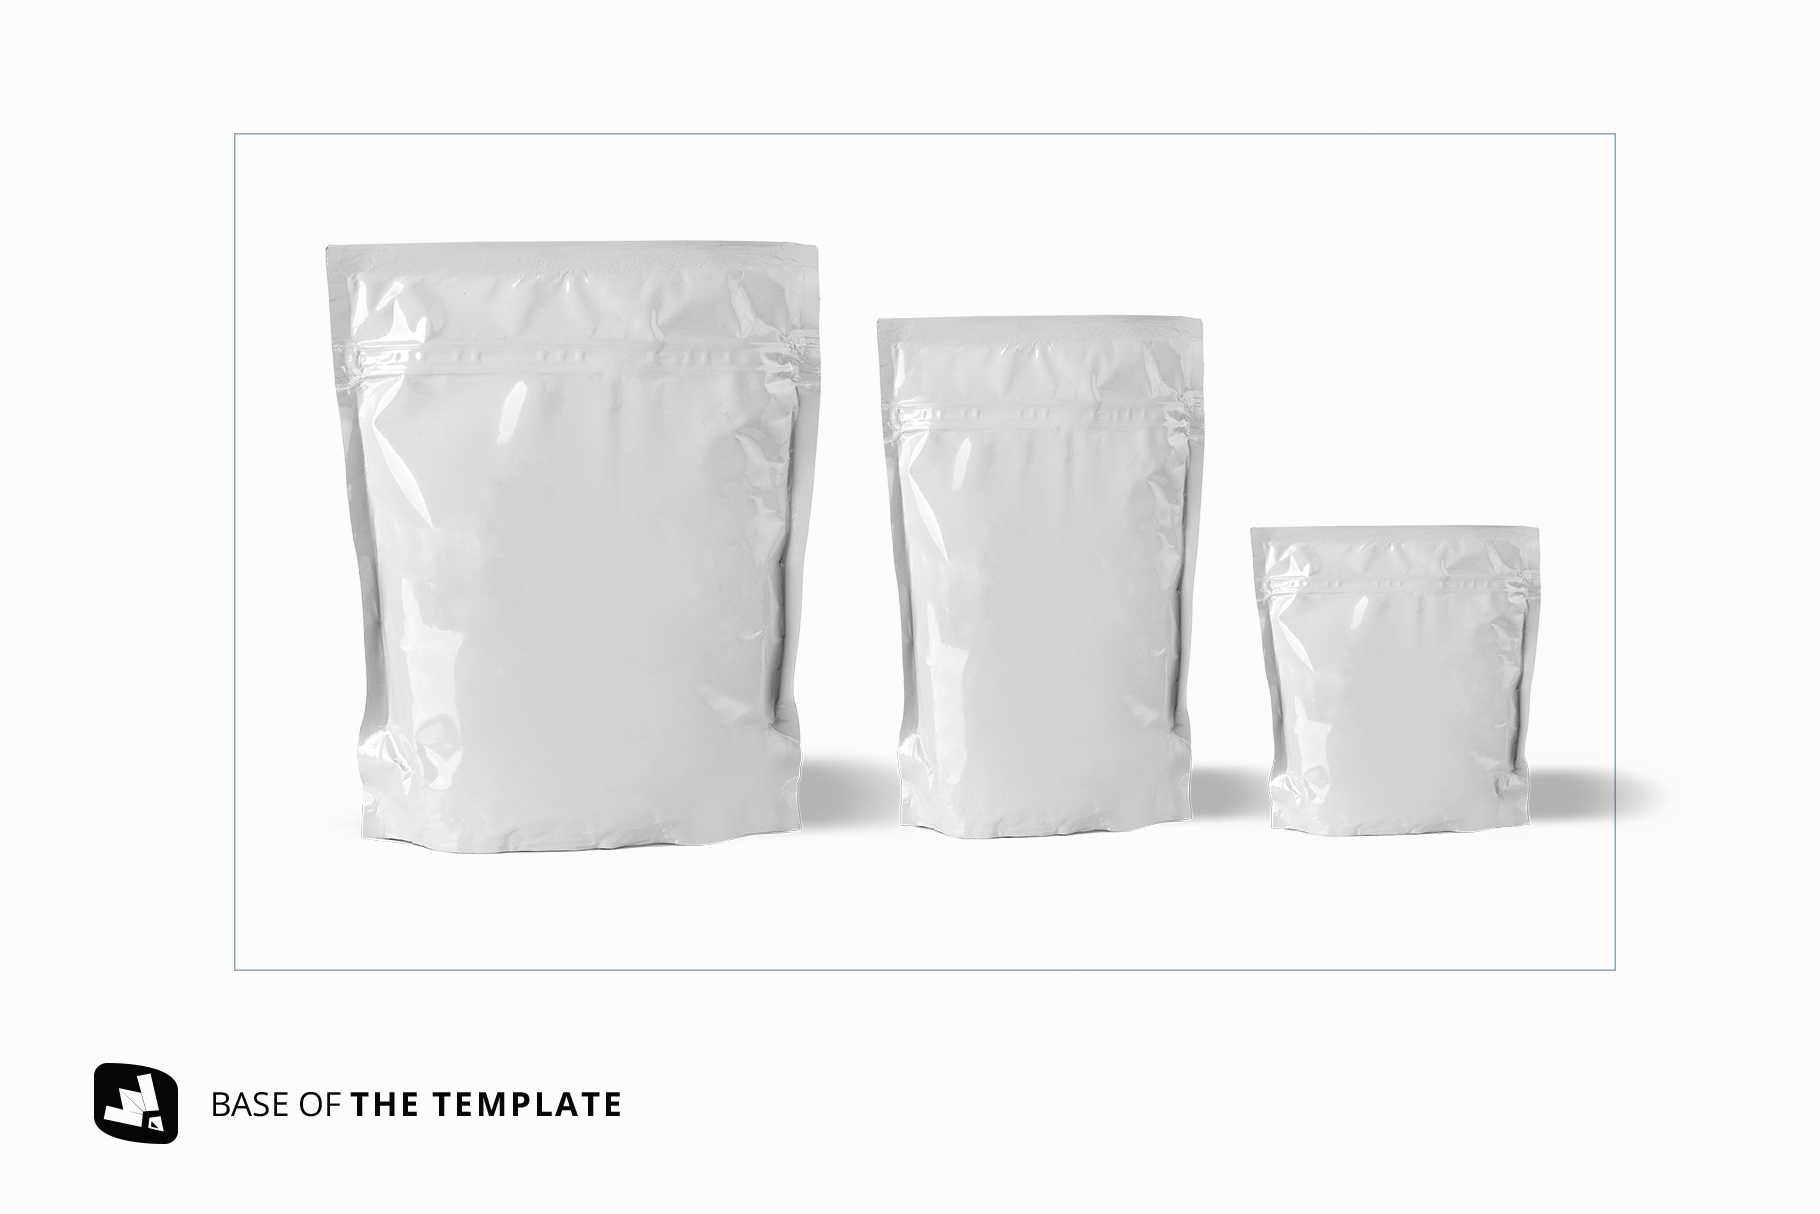 base image of the flexible food pouch packaging mockup